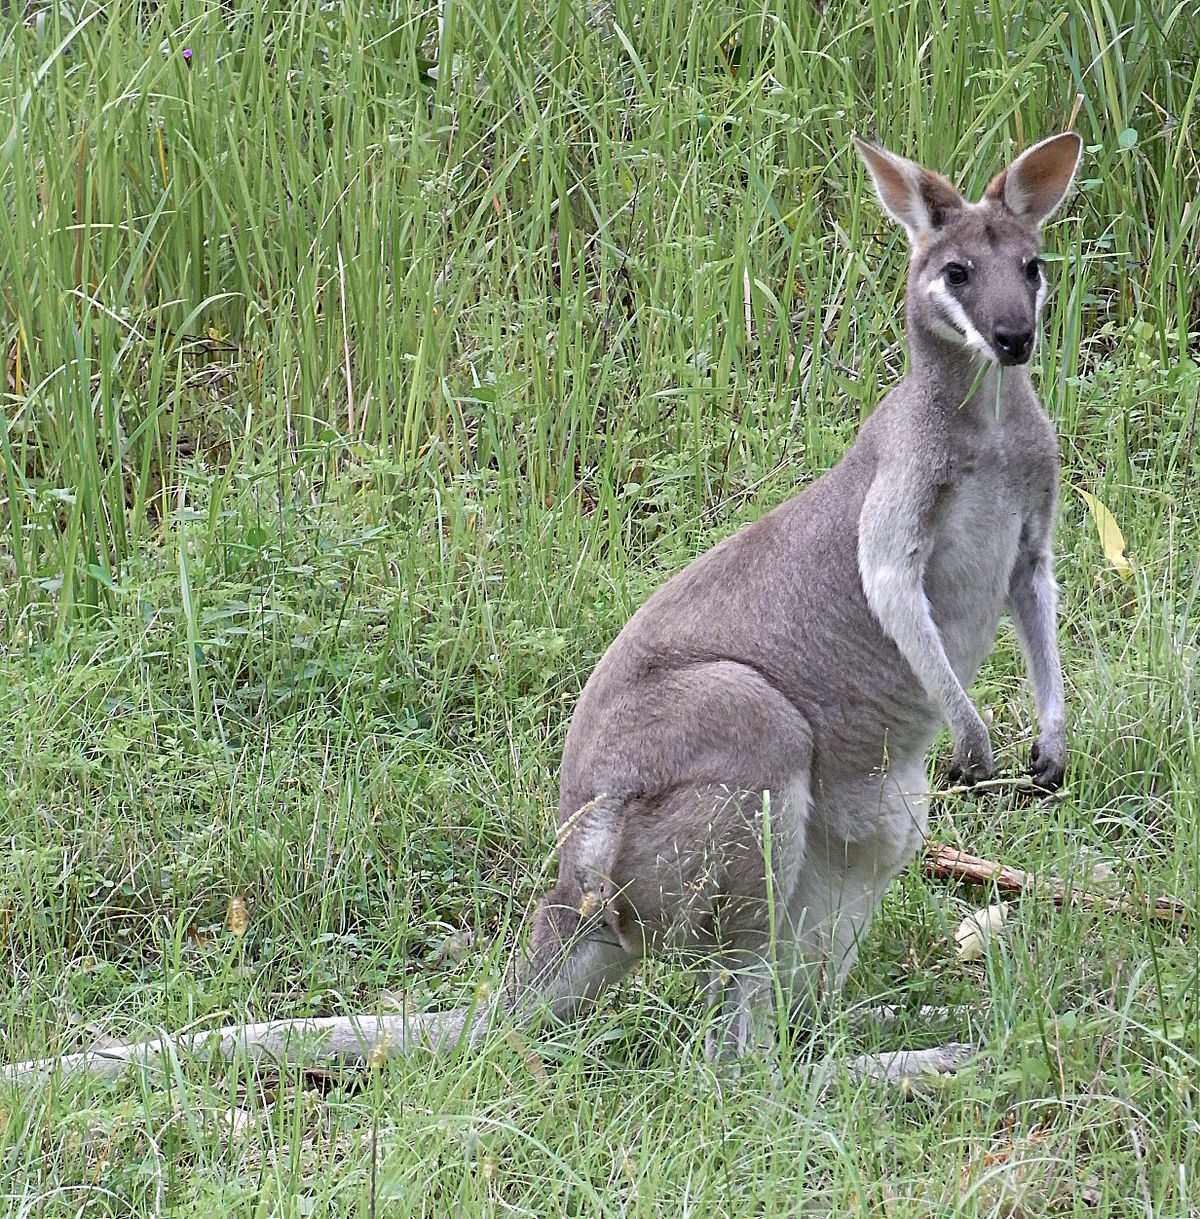 Whiptail wallaby wikipedia - Image kangourou ...